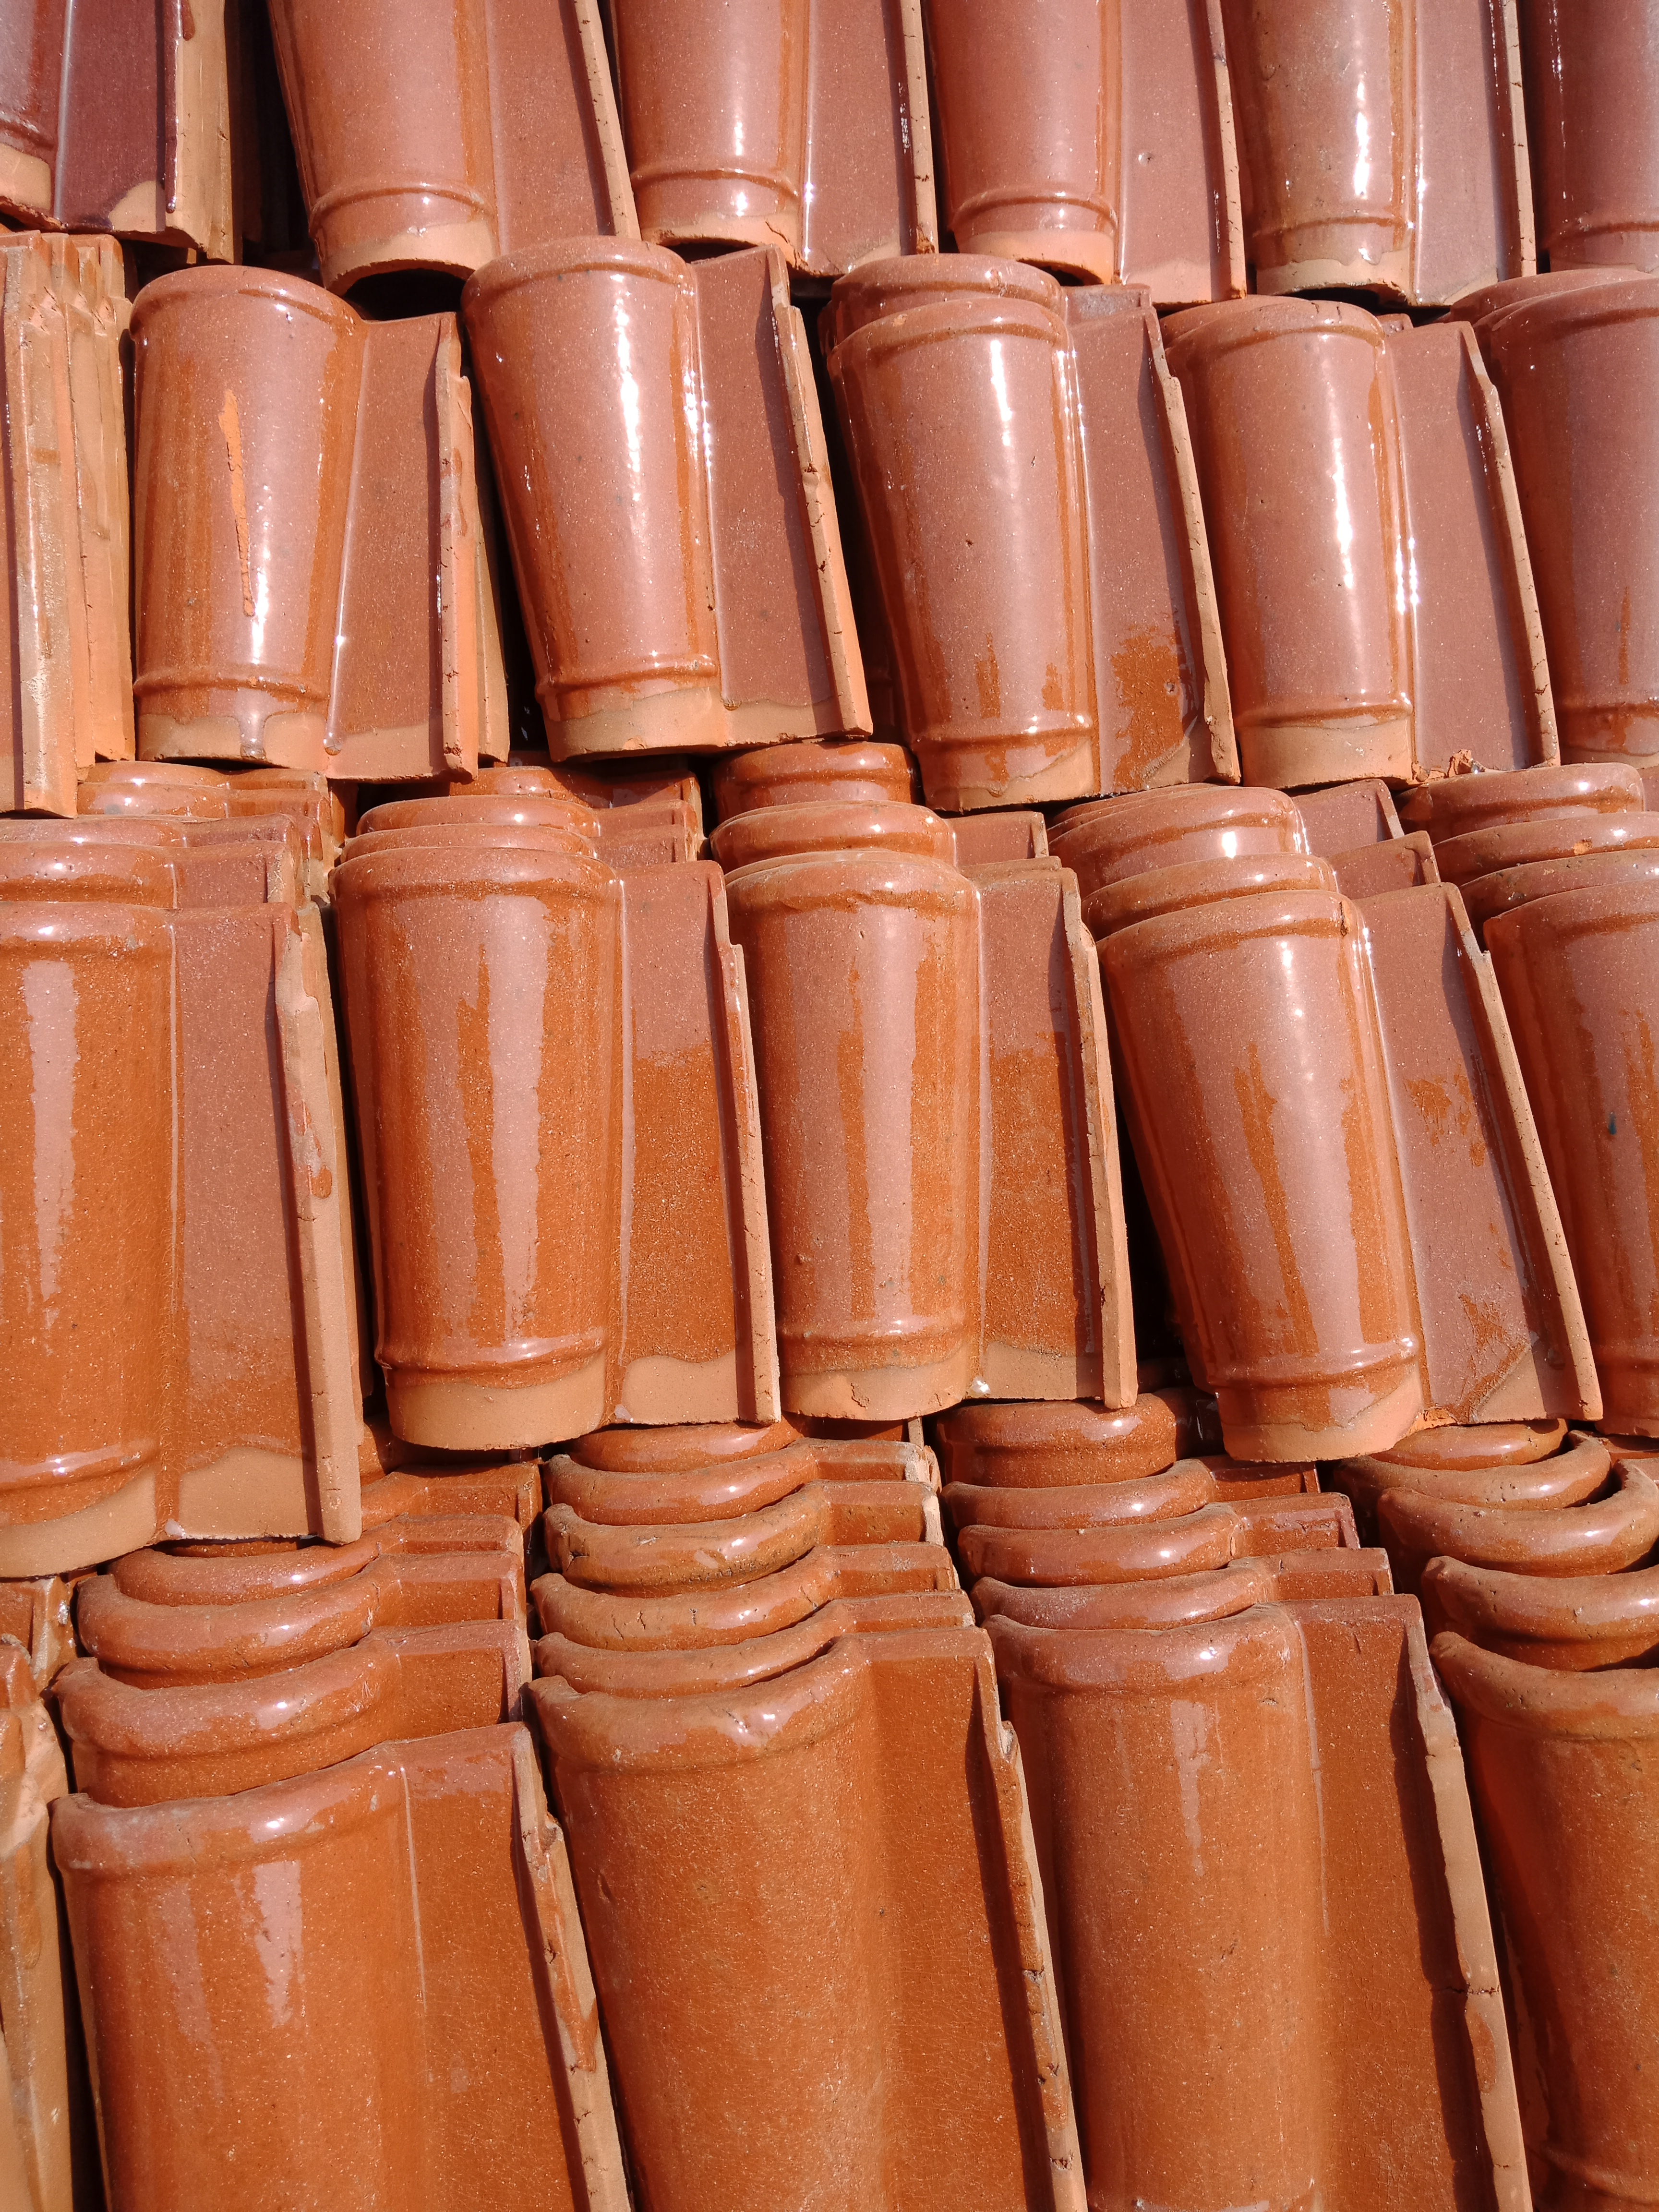 2 Terracotta Glazed Roof Tiles Clay Roof Tiles Rates in Pakistan Images.